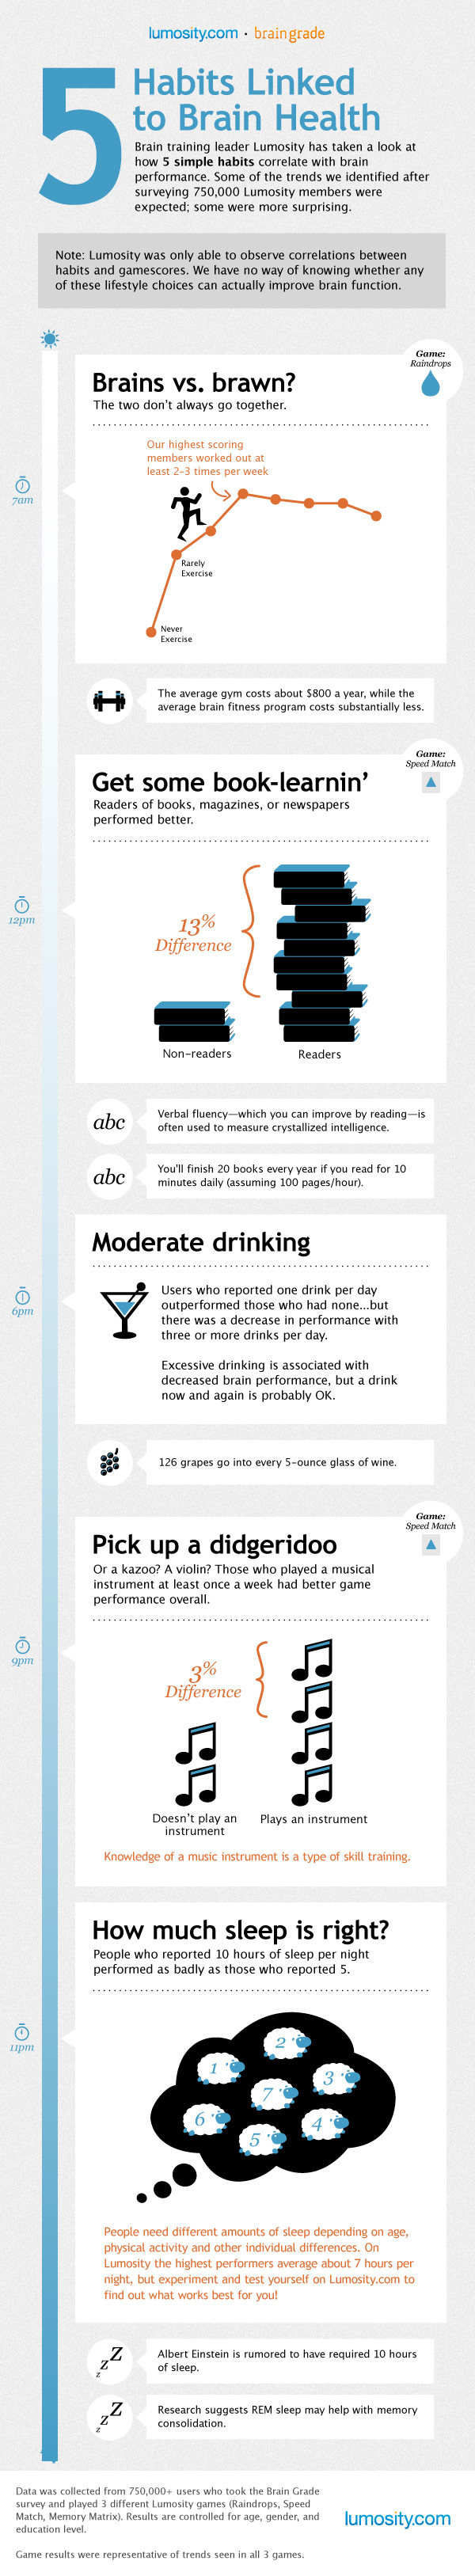 What Do Your Habits Say About Your Brain Health? - Infographic